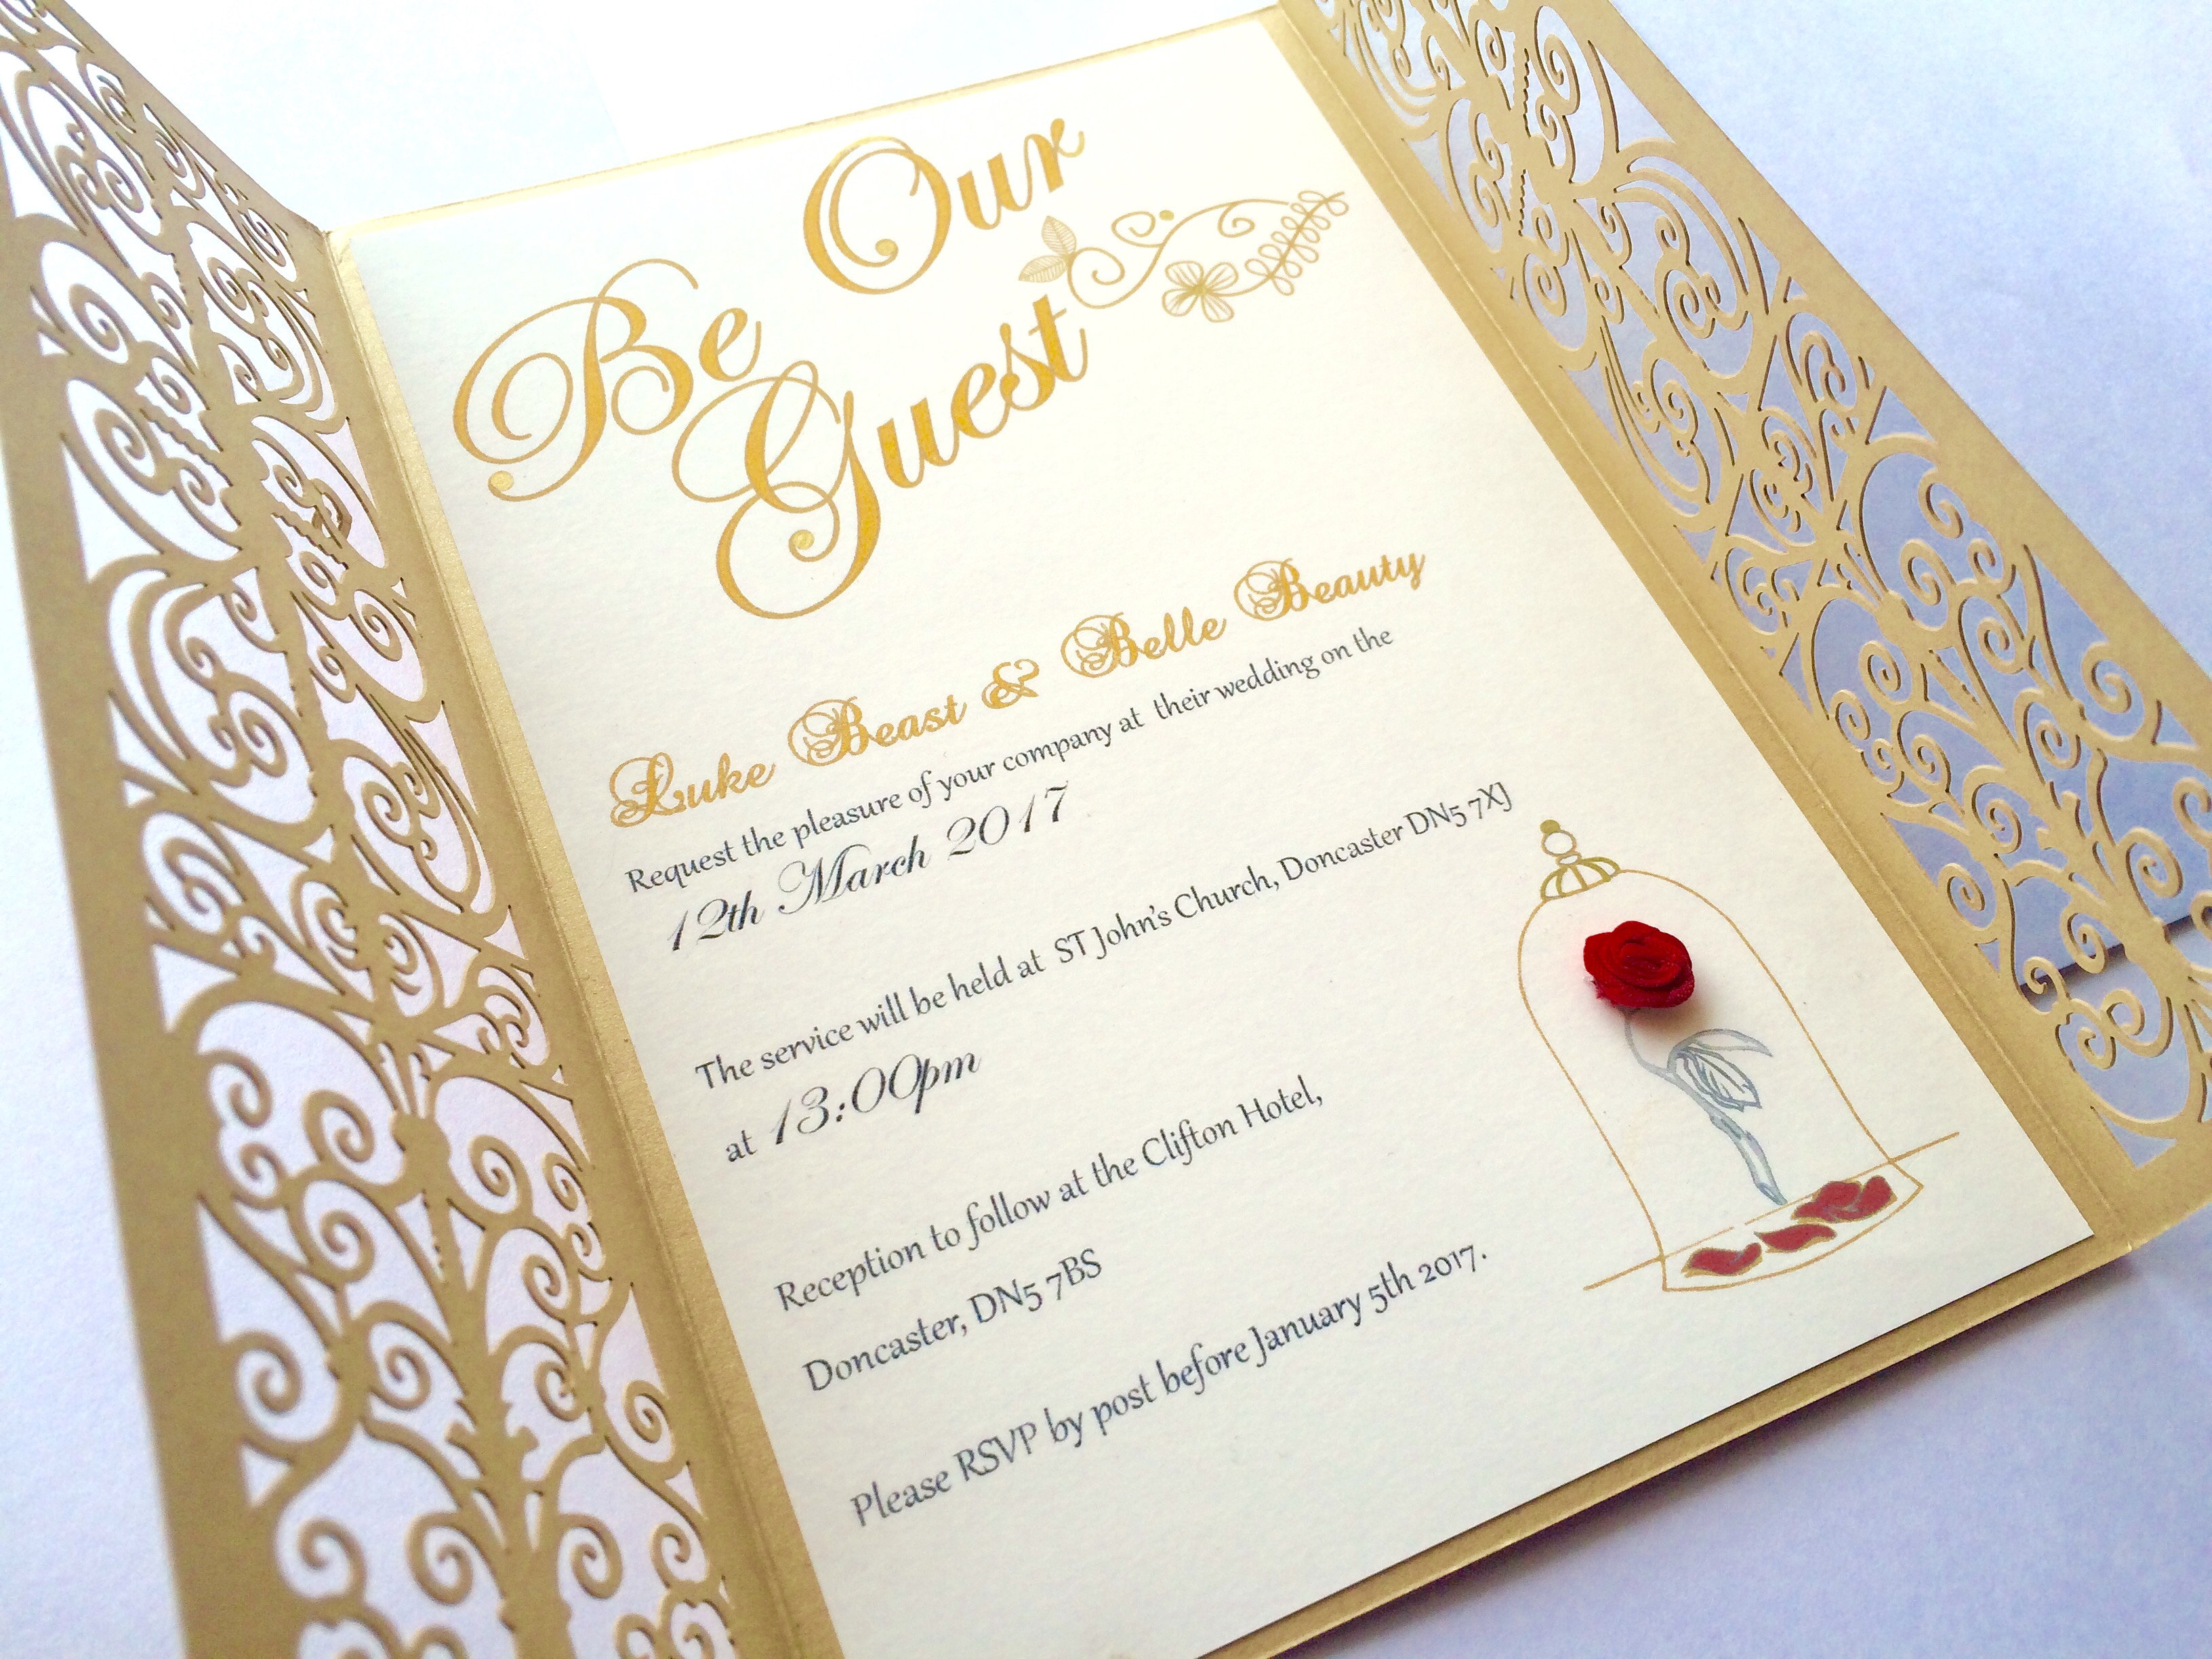 My Little Future - Wedding Invitations | Be Our Guest